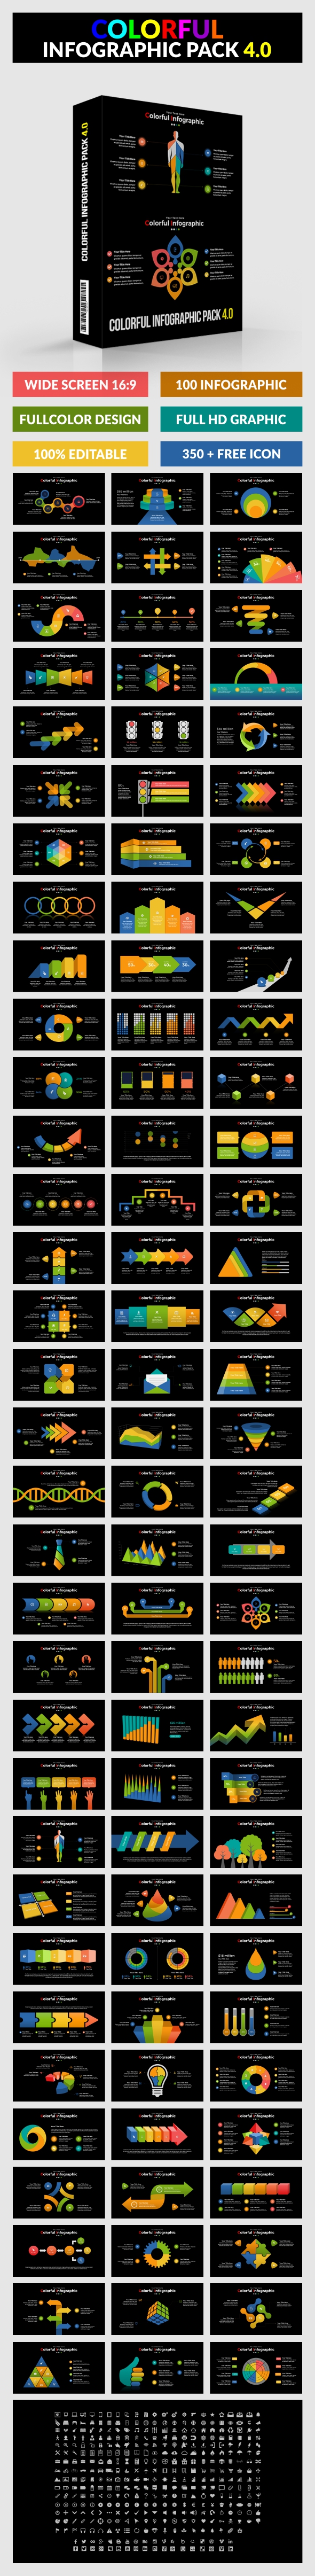 Colorful Infographic Pack 4.0 - PowerPoint - PowerPoint Templates Presentation Templates